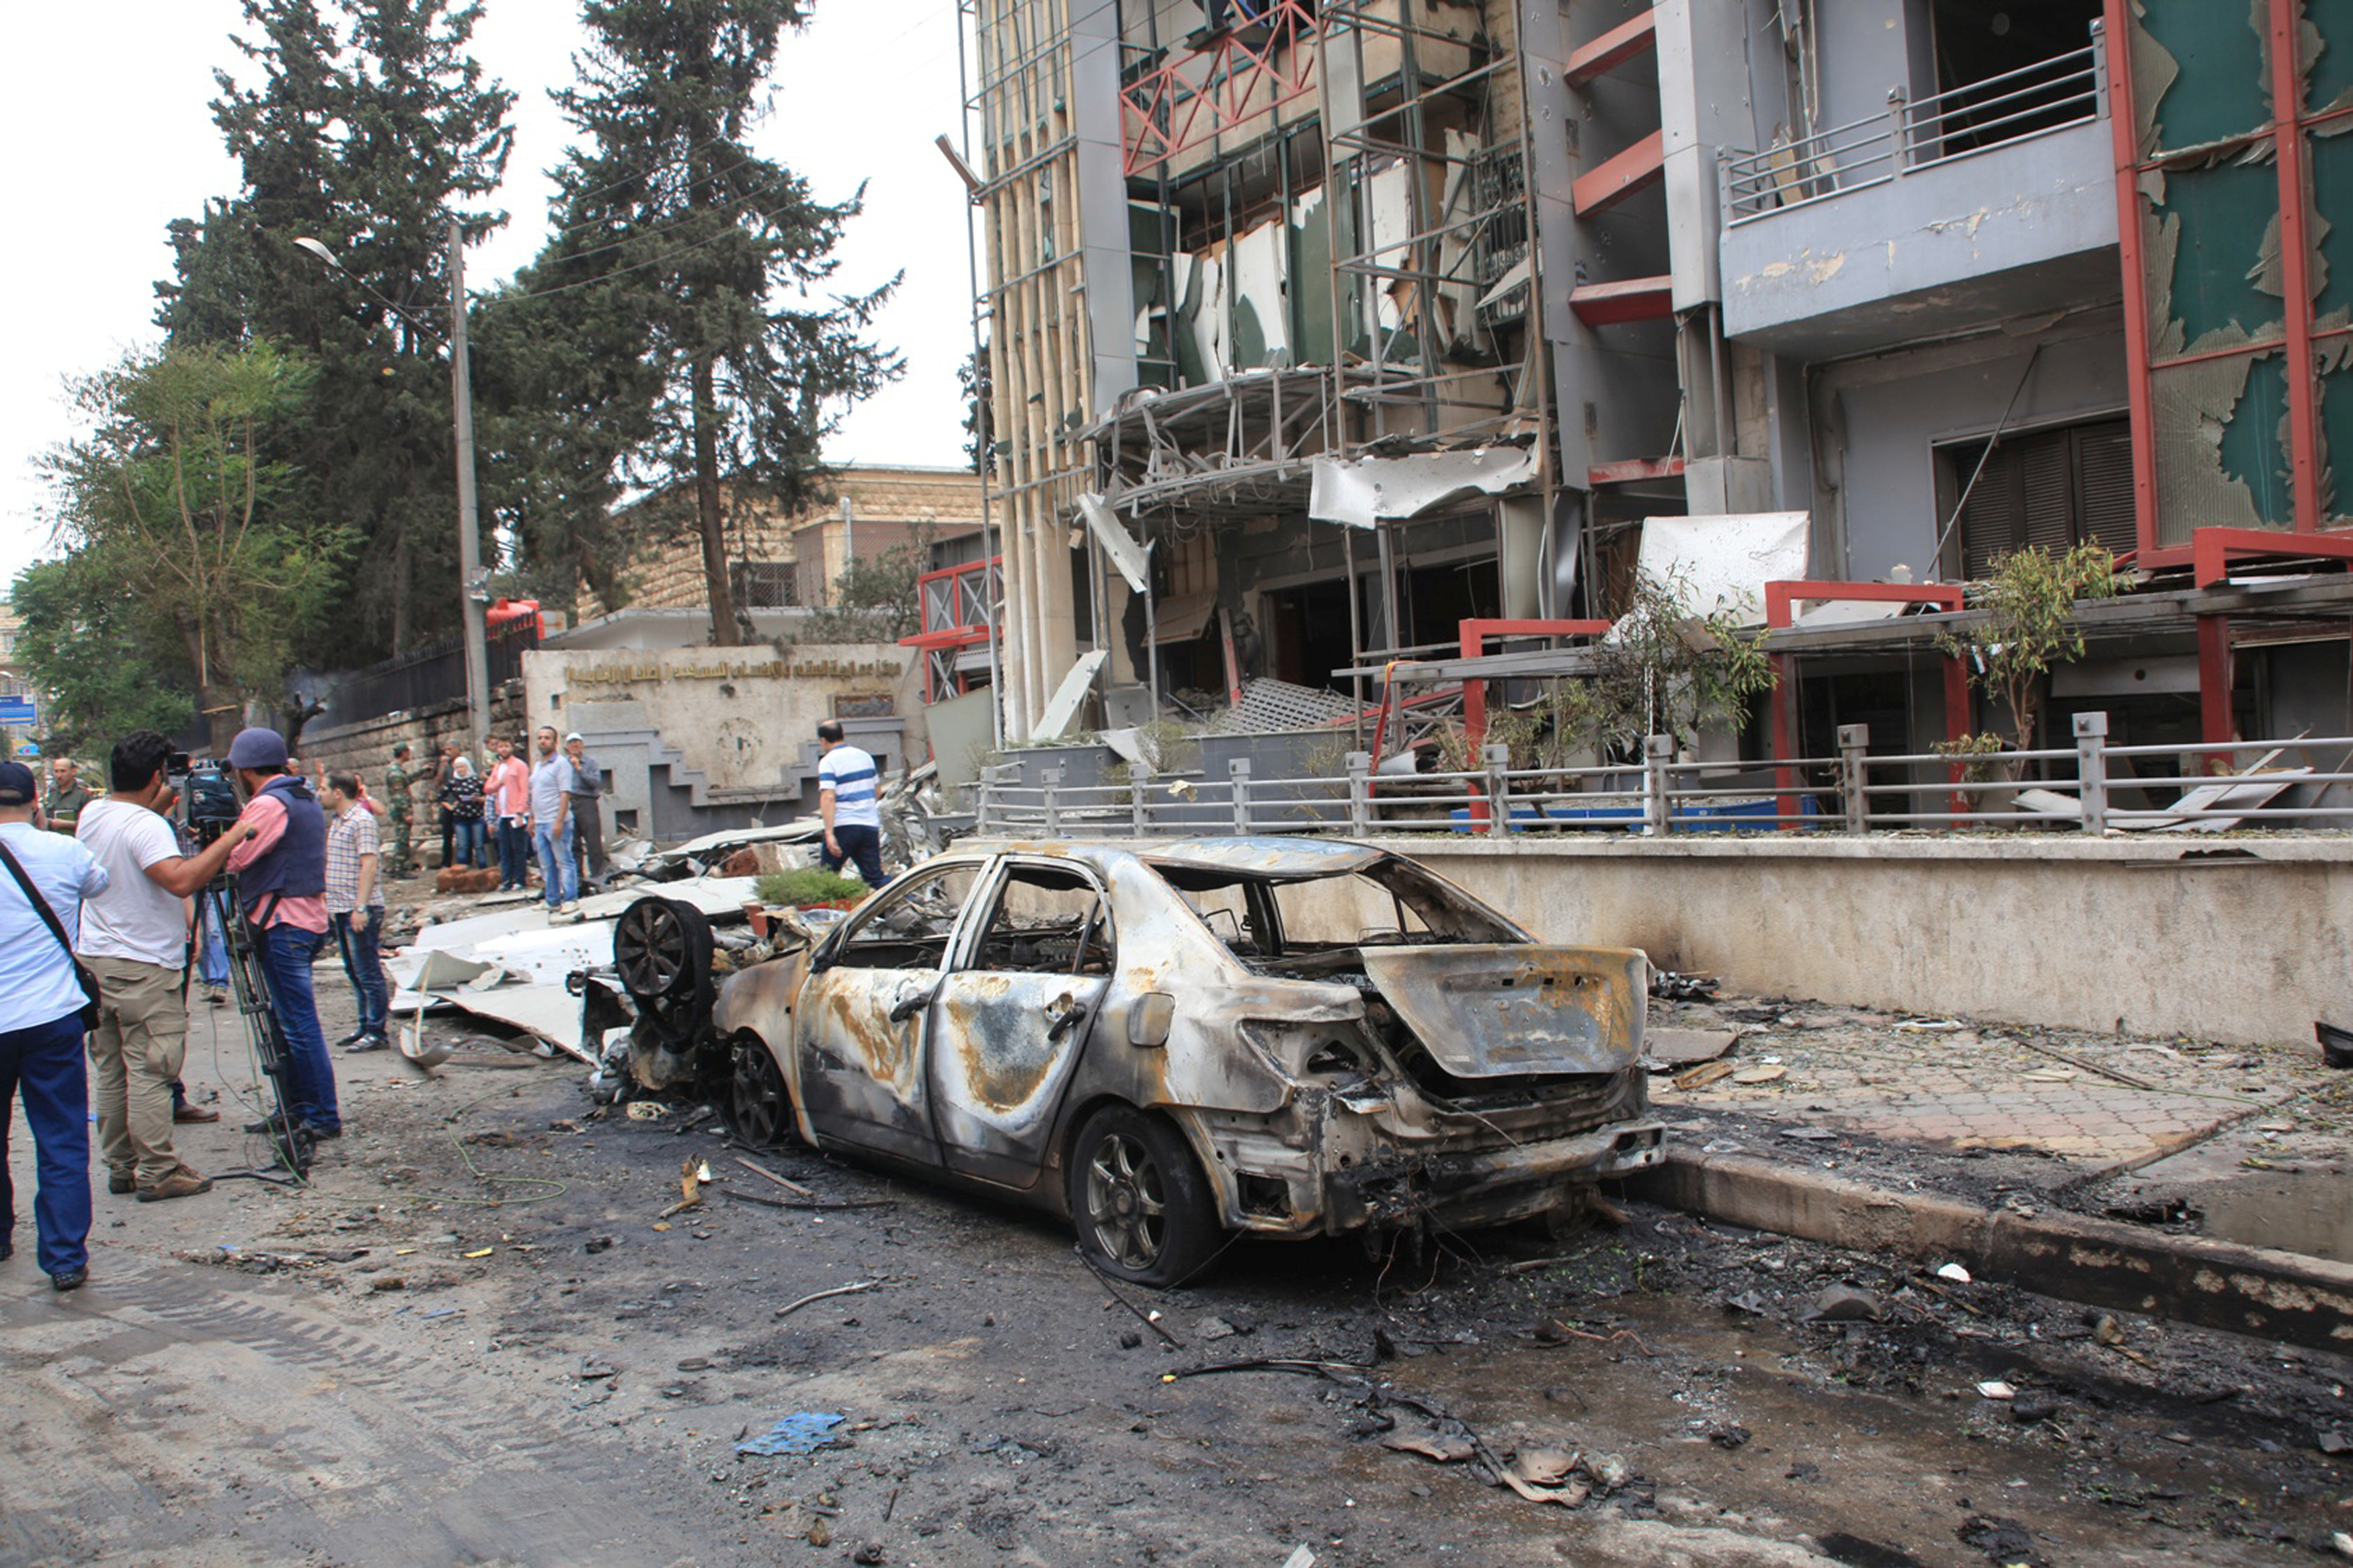 Journalists and civilians stand near the damage after rockets fired by insurgents hit the al-Dabit maternity clinic in government-held parts of Aleppo city, Syria, in this handout picture provided by SANA, May 3, 2016.